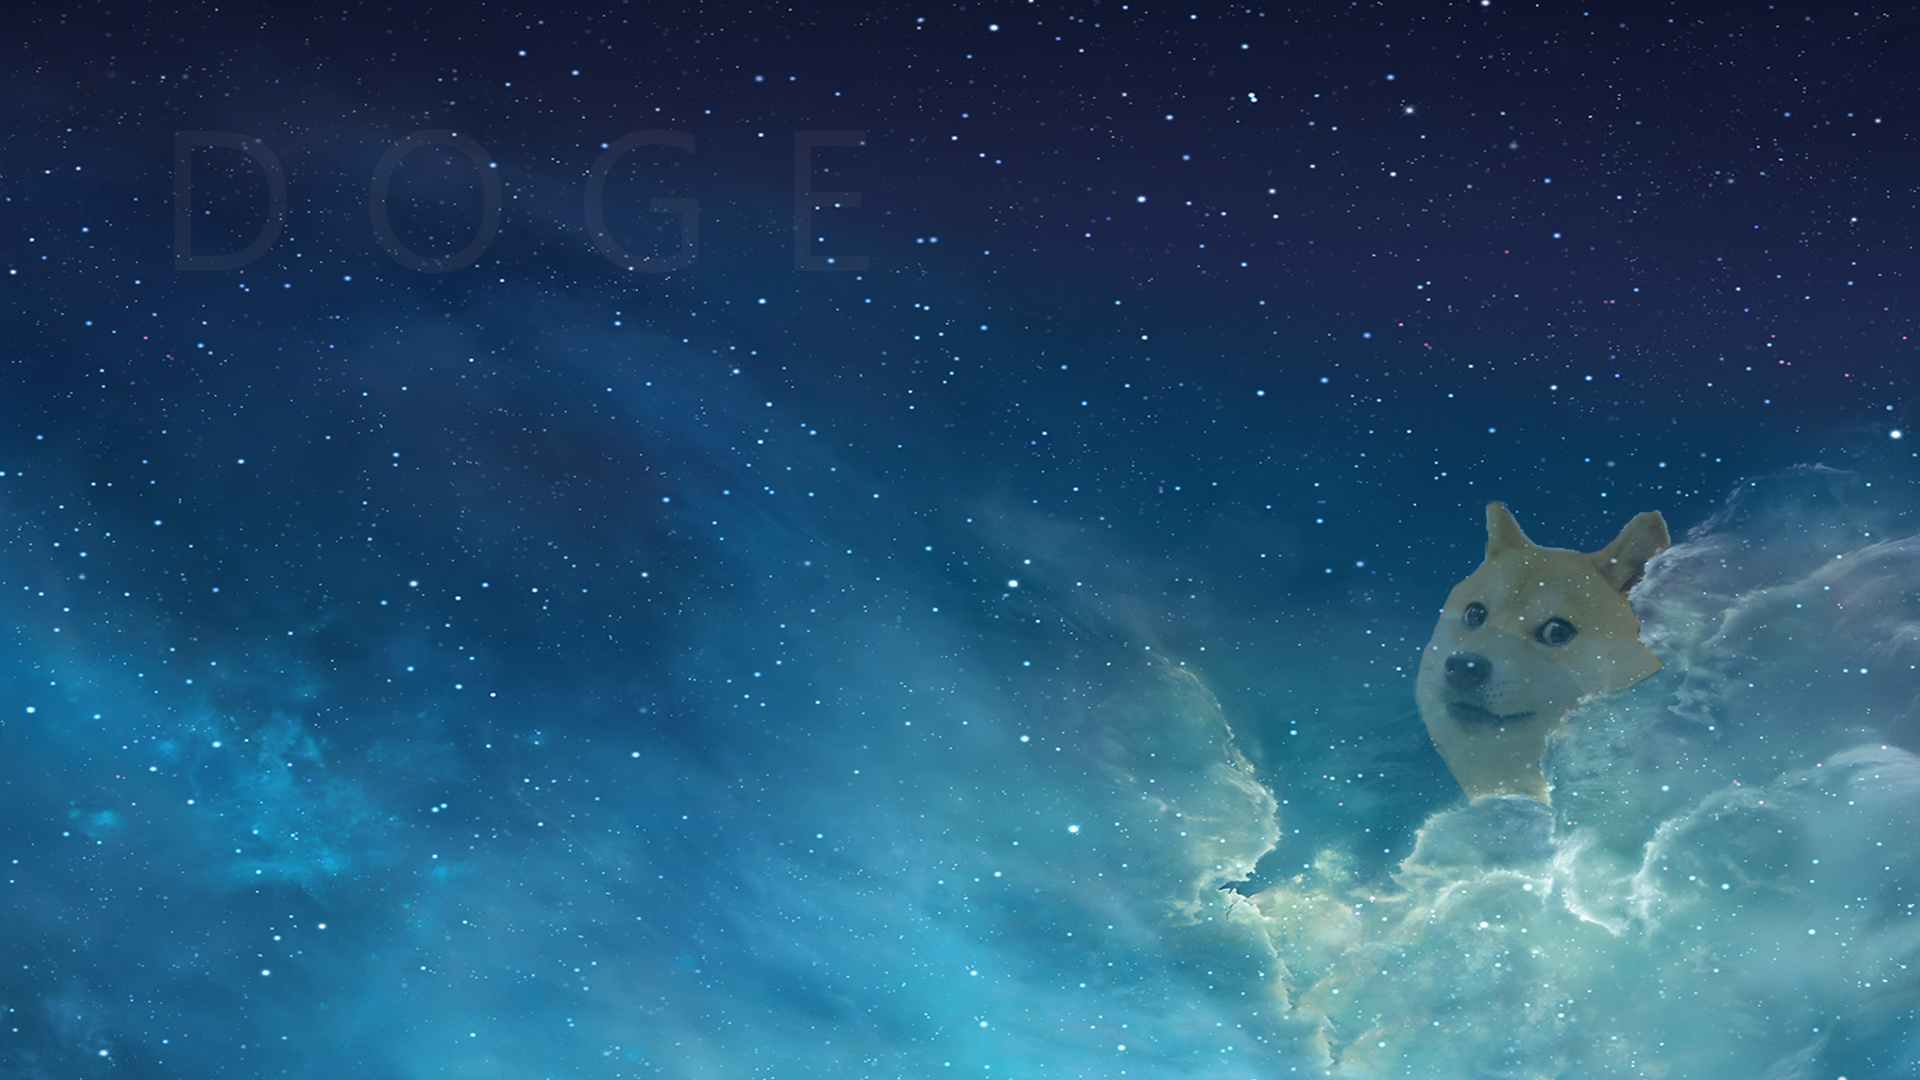 doge shibe wallpaper - photo #20